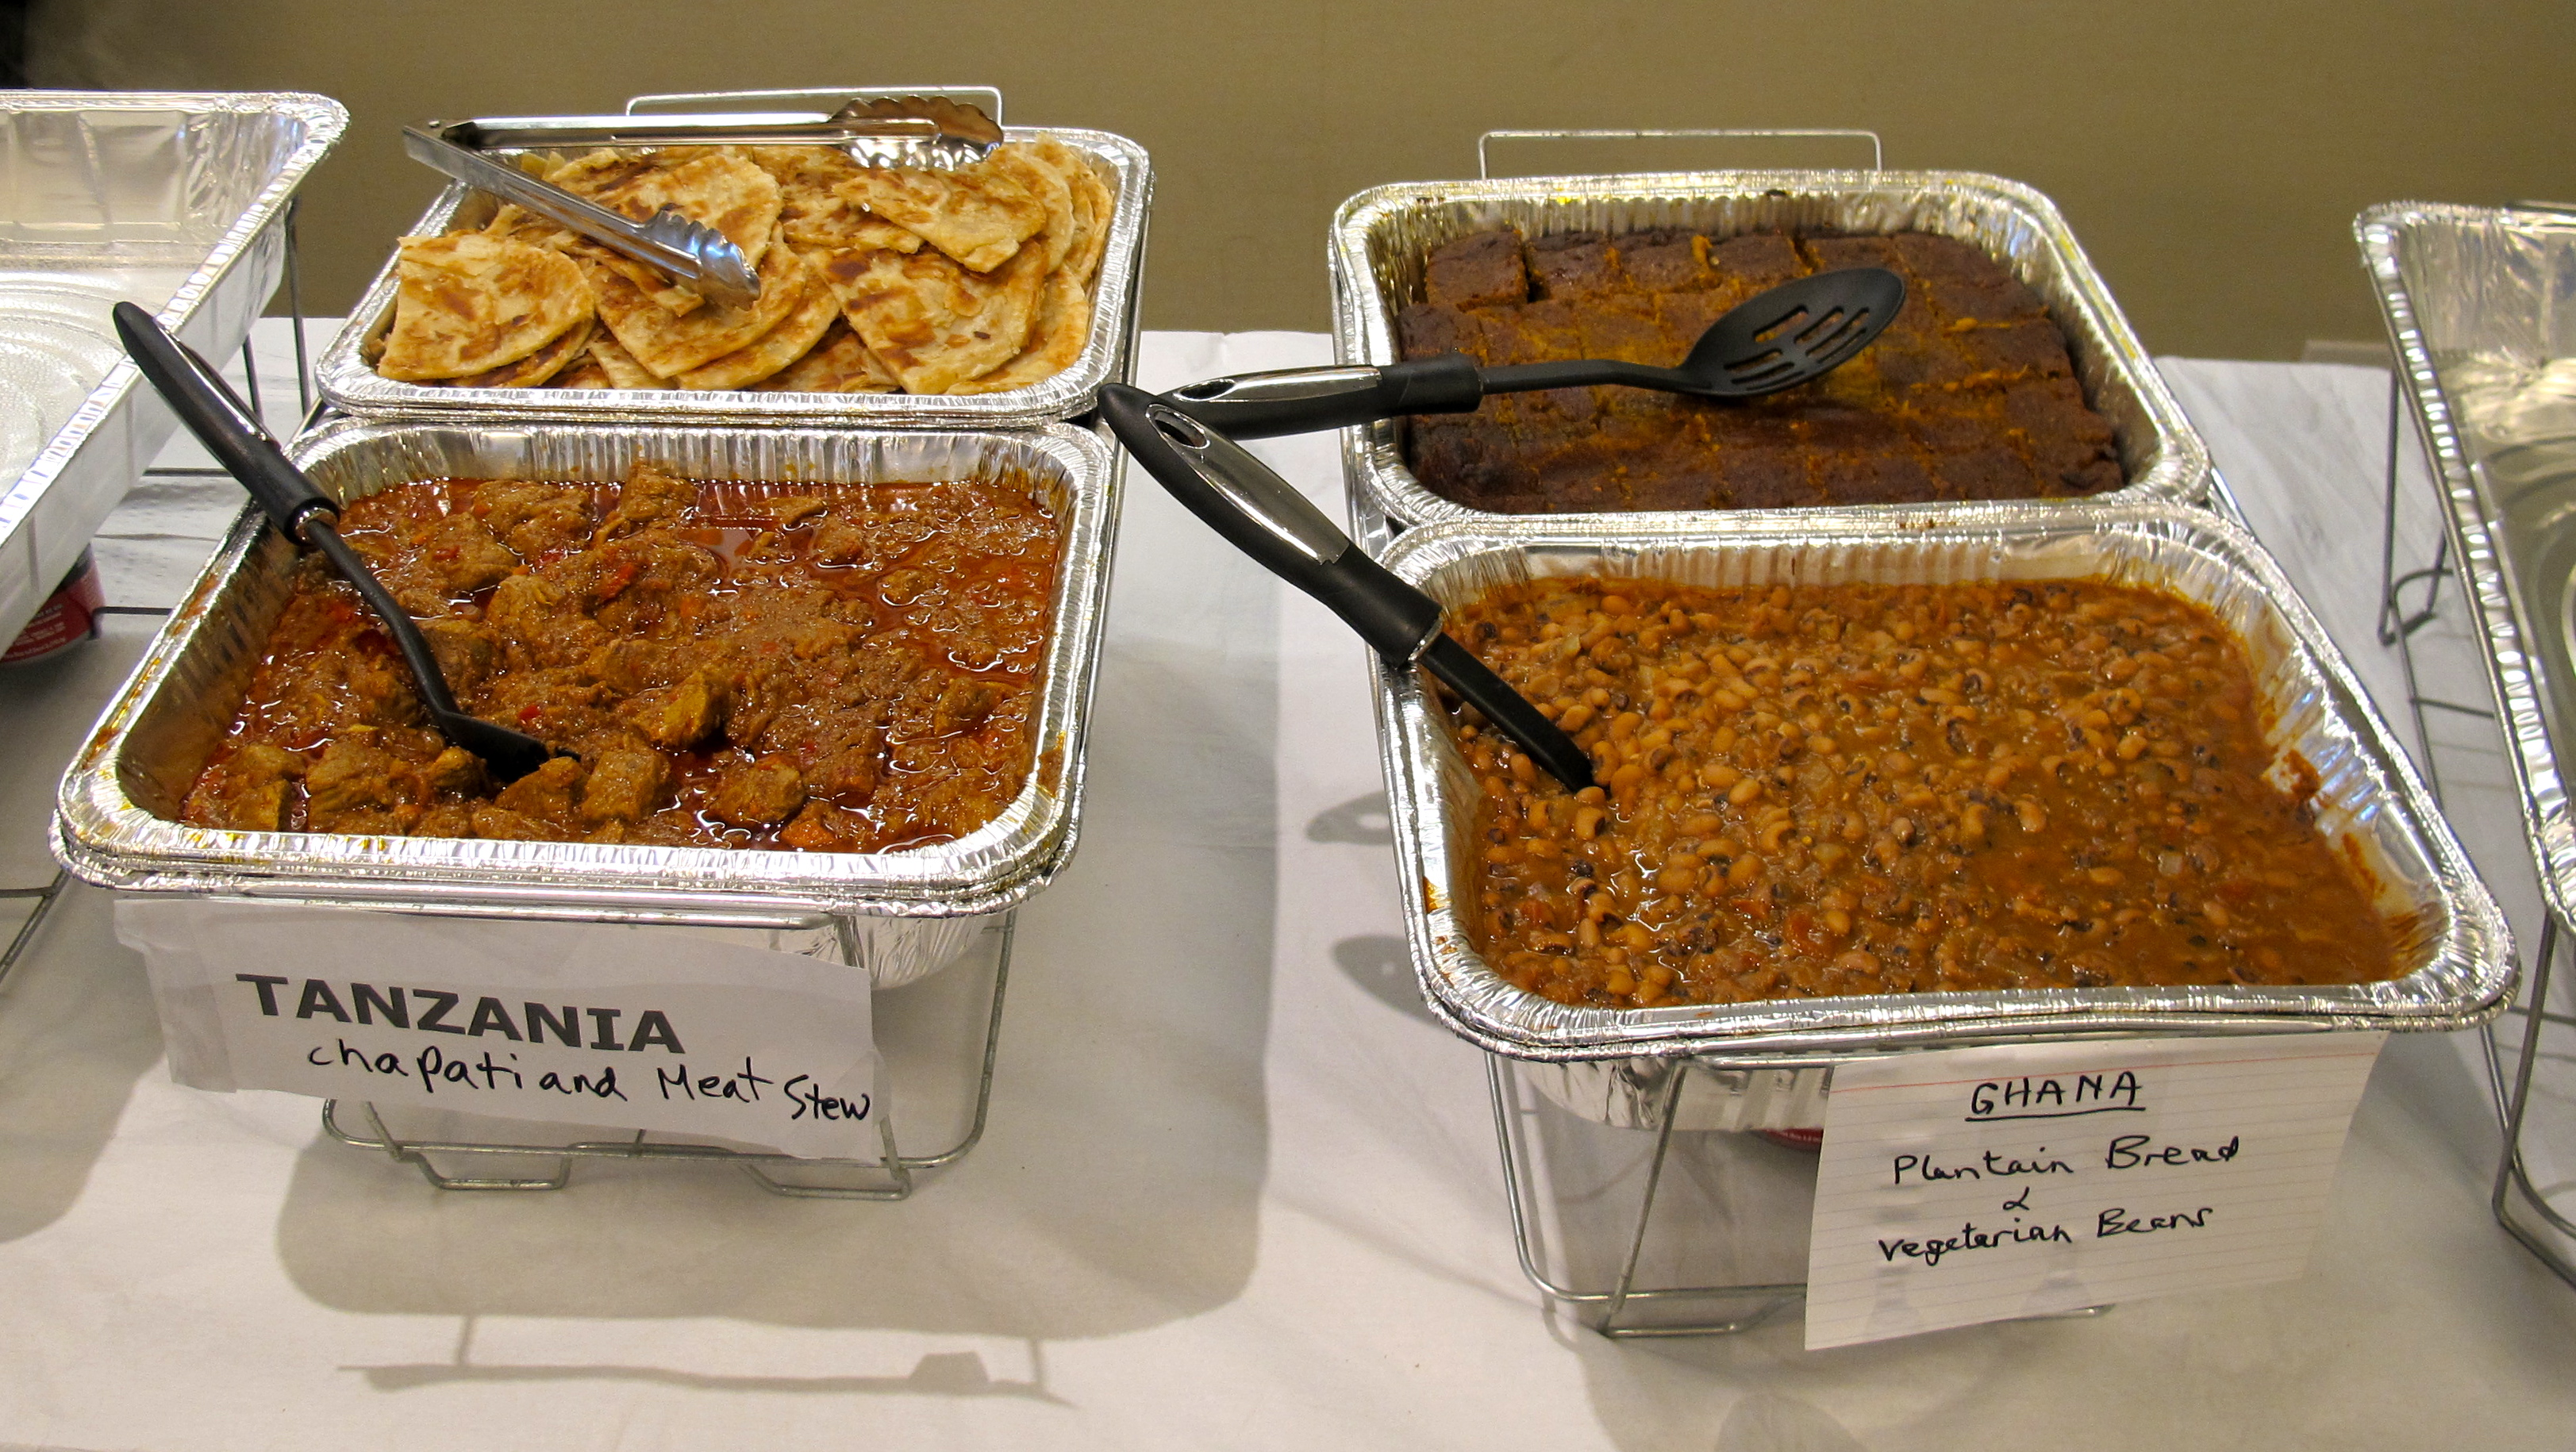 Tanzanian and ghanaian food at unama fundraiser nyc for African cuisine nyc